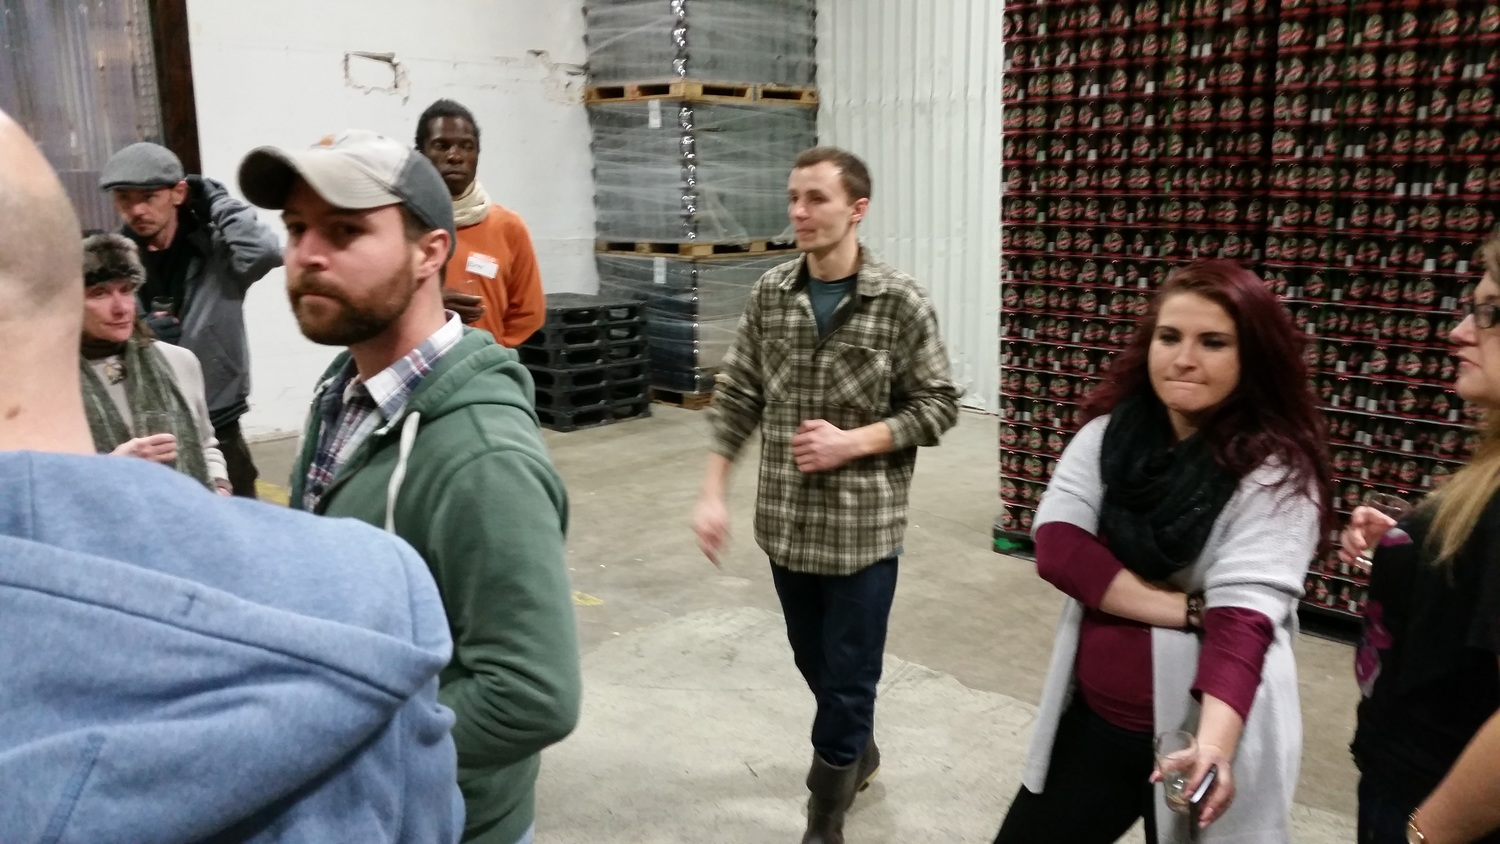 Tyler leads the group through the massive Geary's packaging room